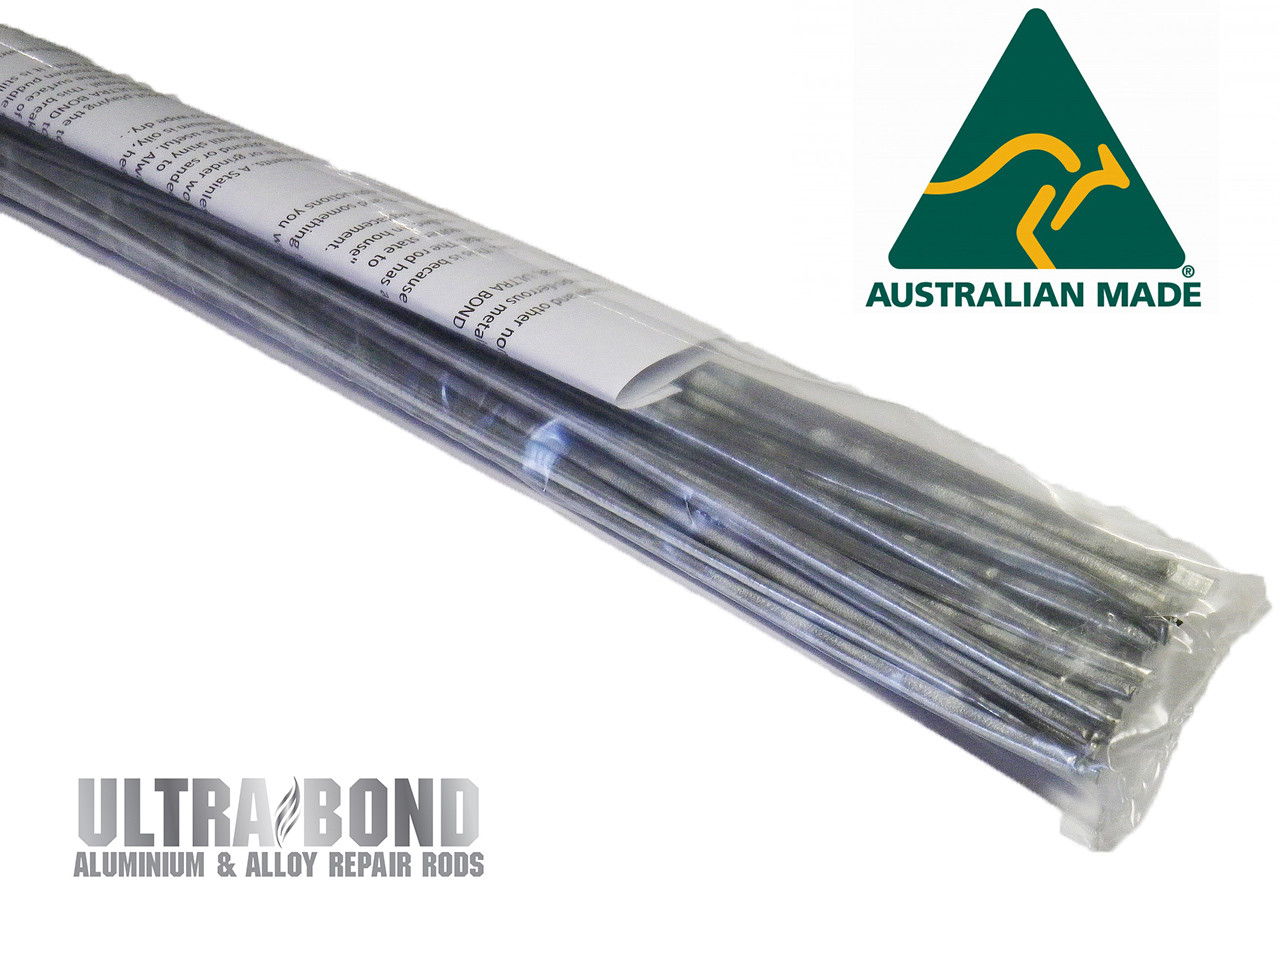 Aluminium Repair rods  Ultra Bond 30 Rod Trade pack  Brazing, Soldering, Welding